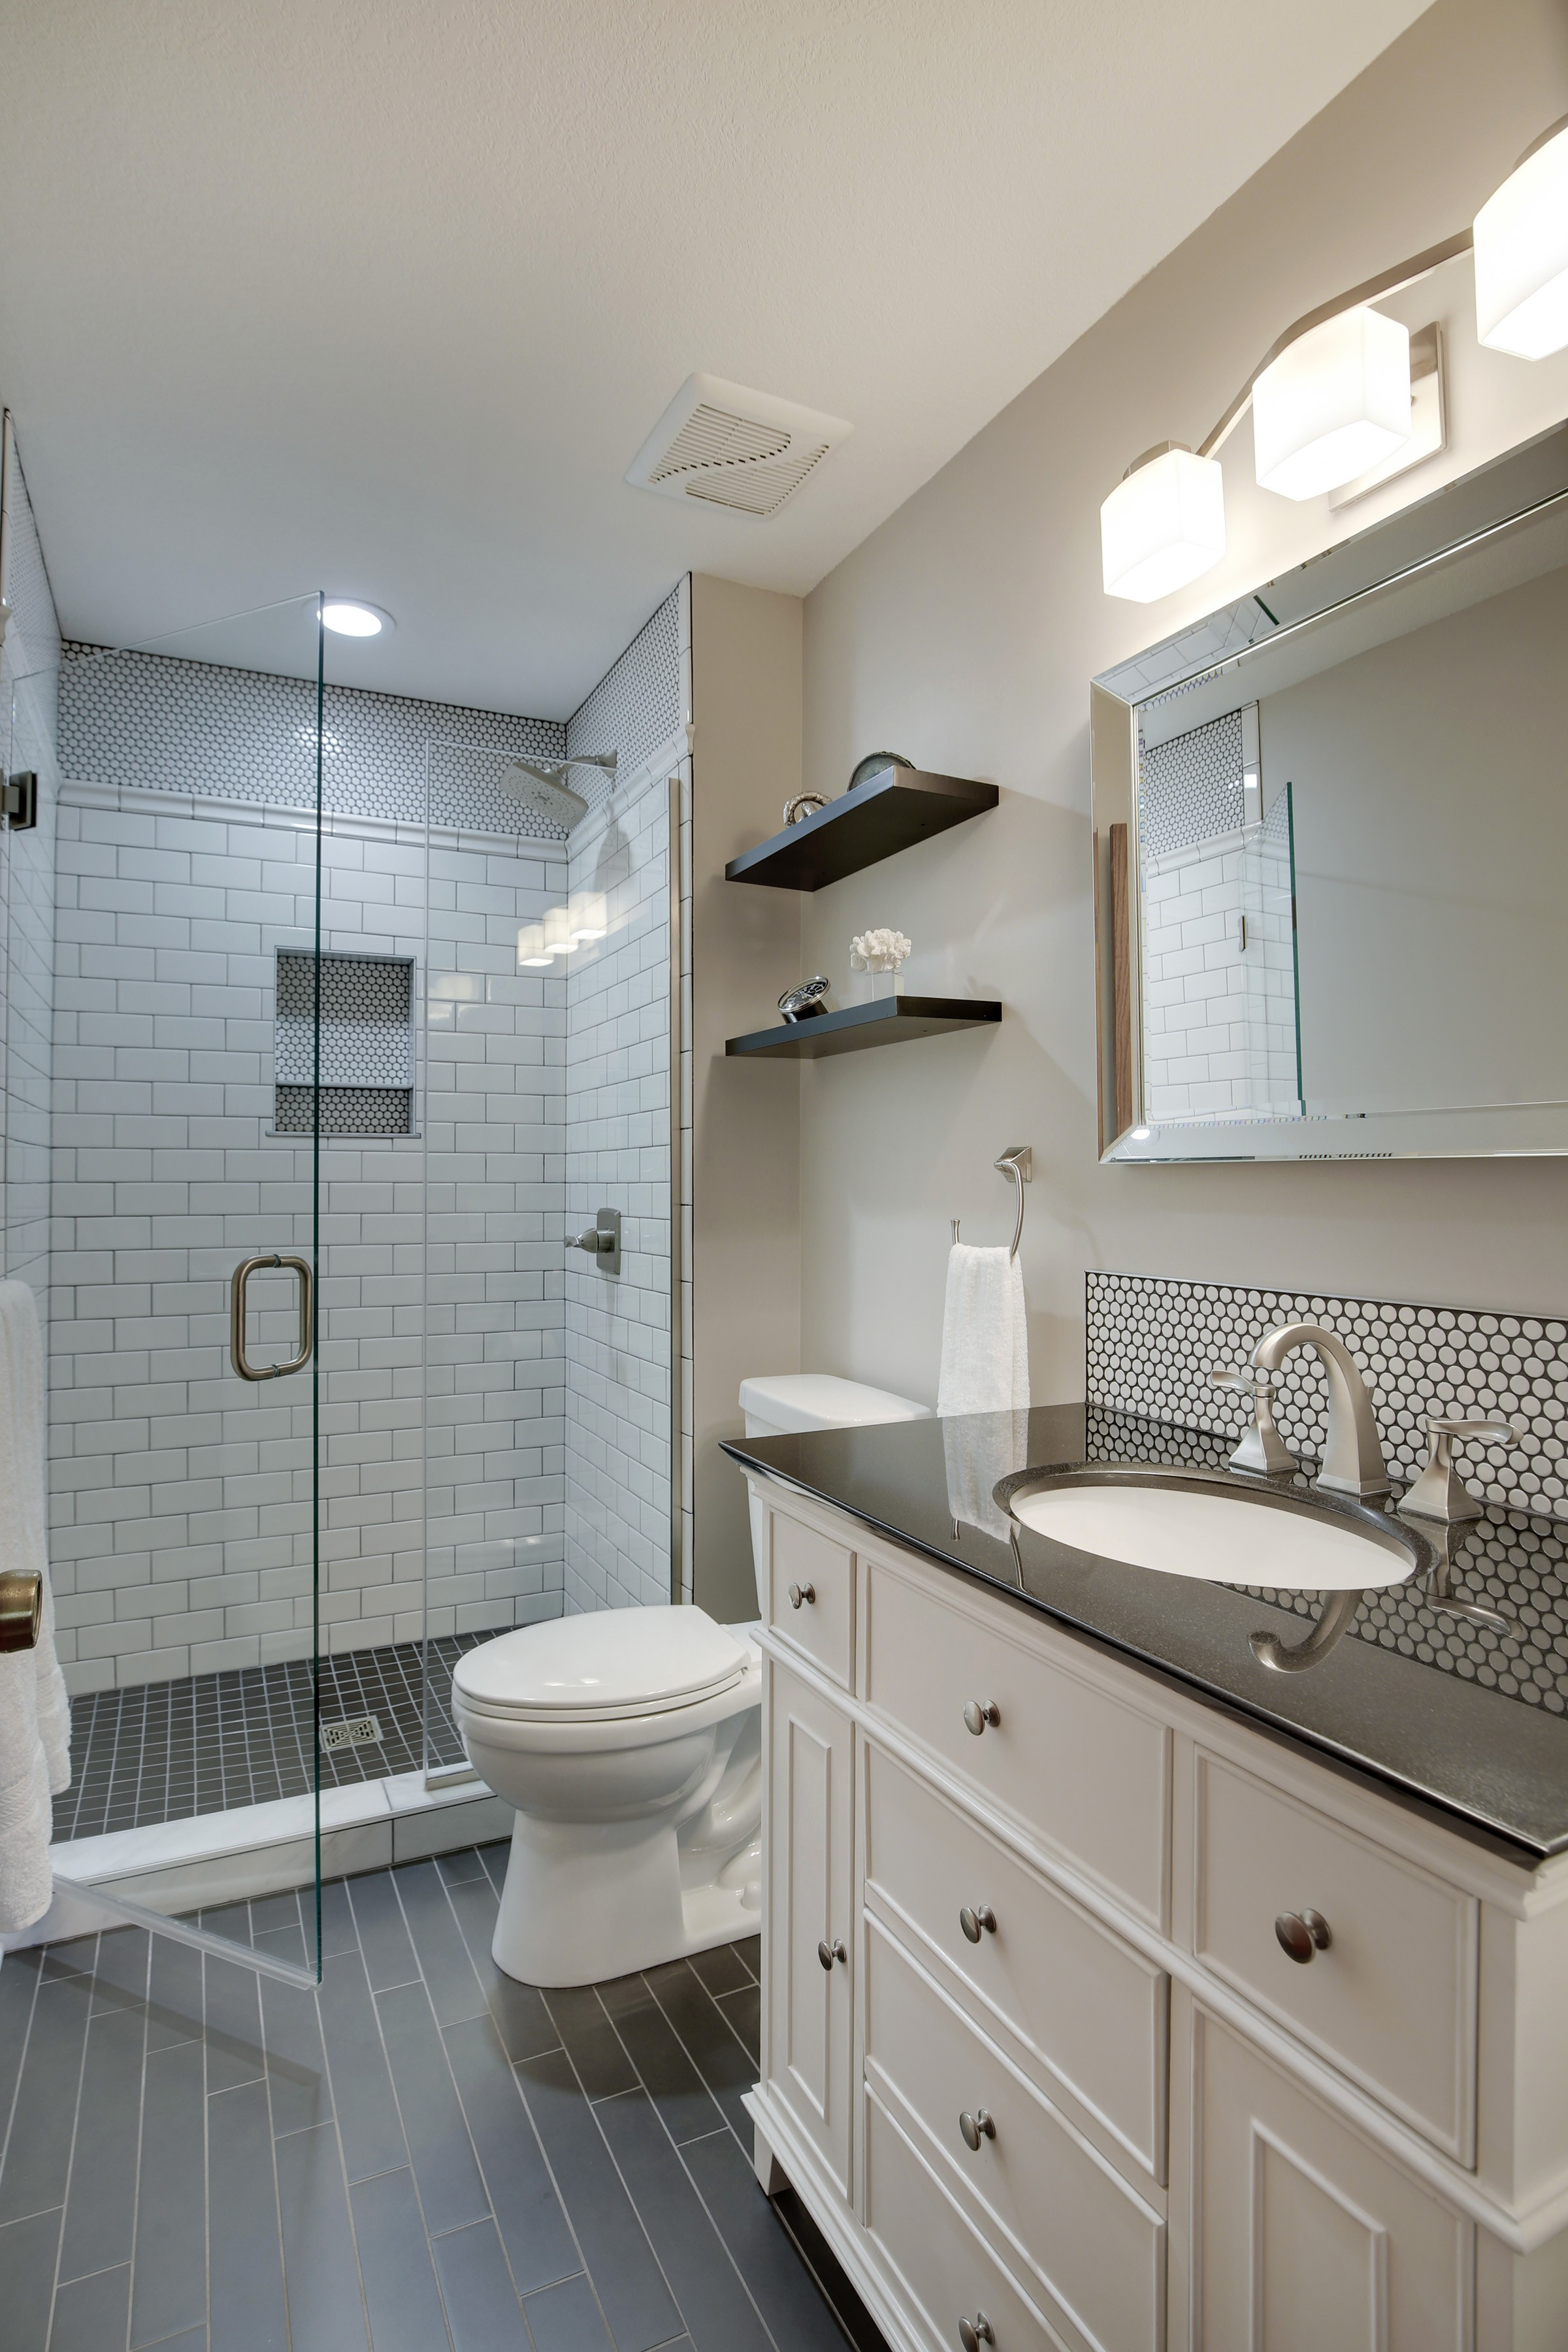 Three Remodeling Projects You Should Consider This Summer